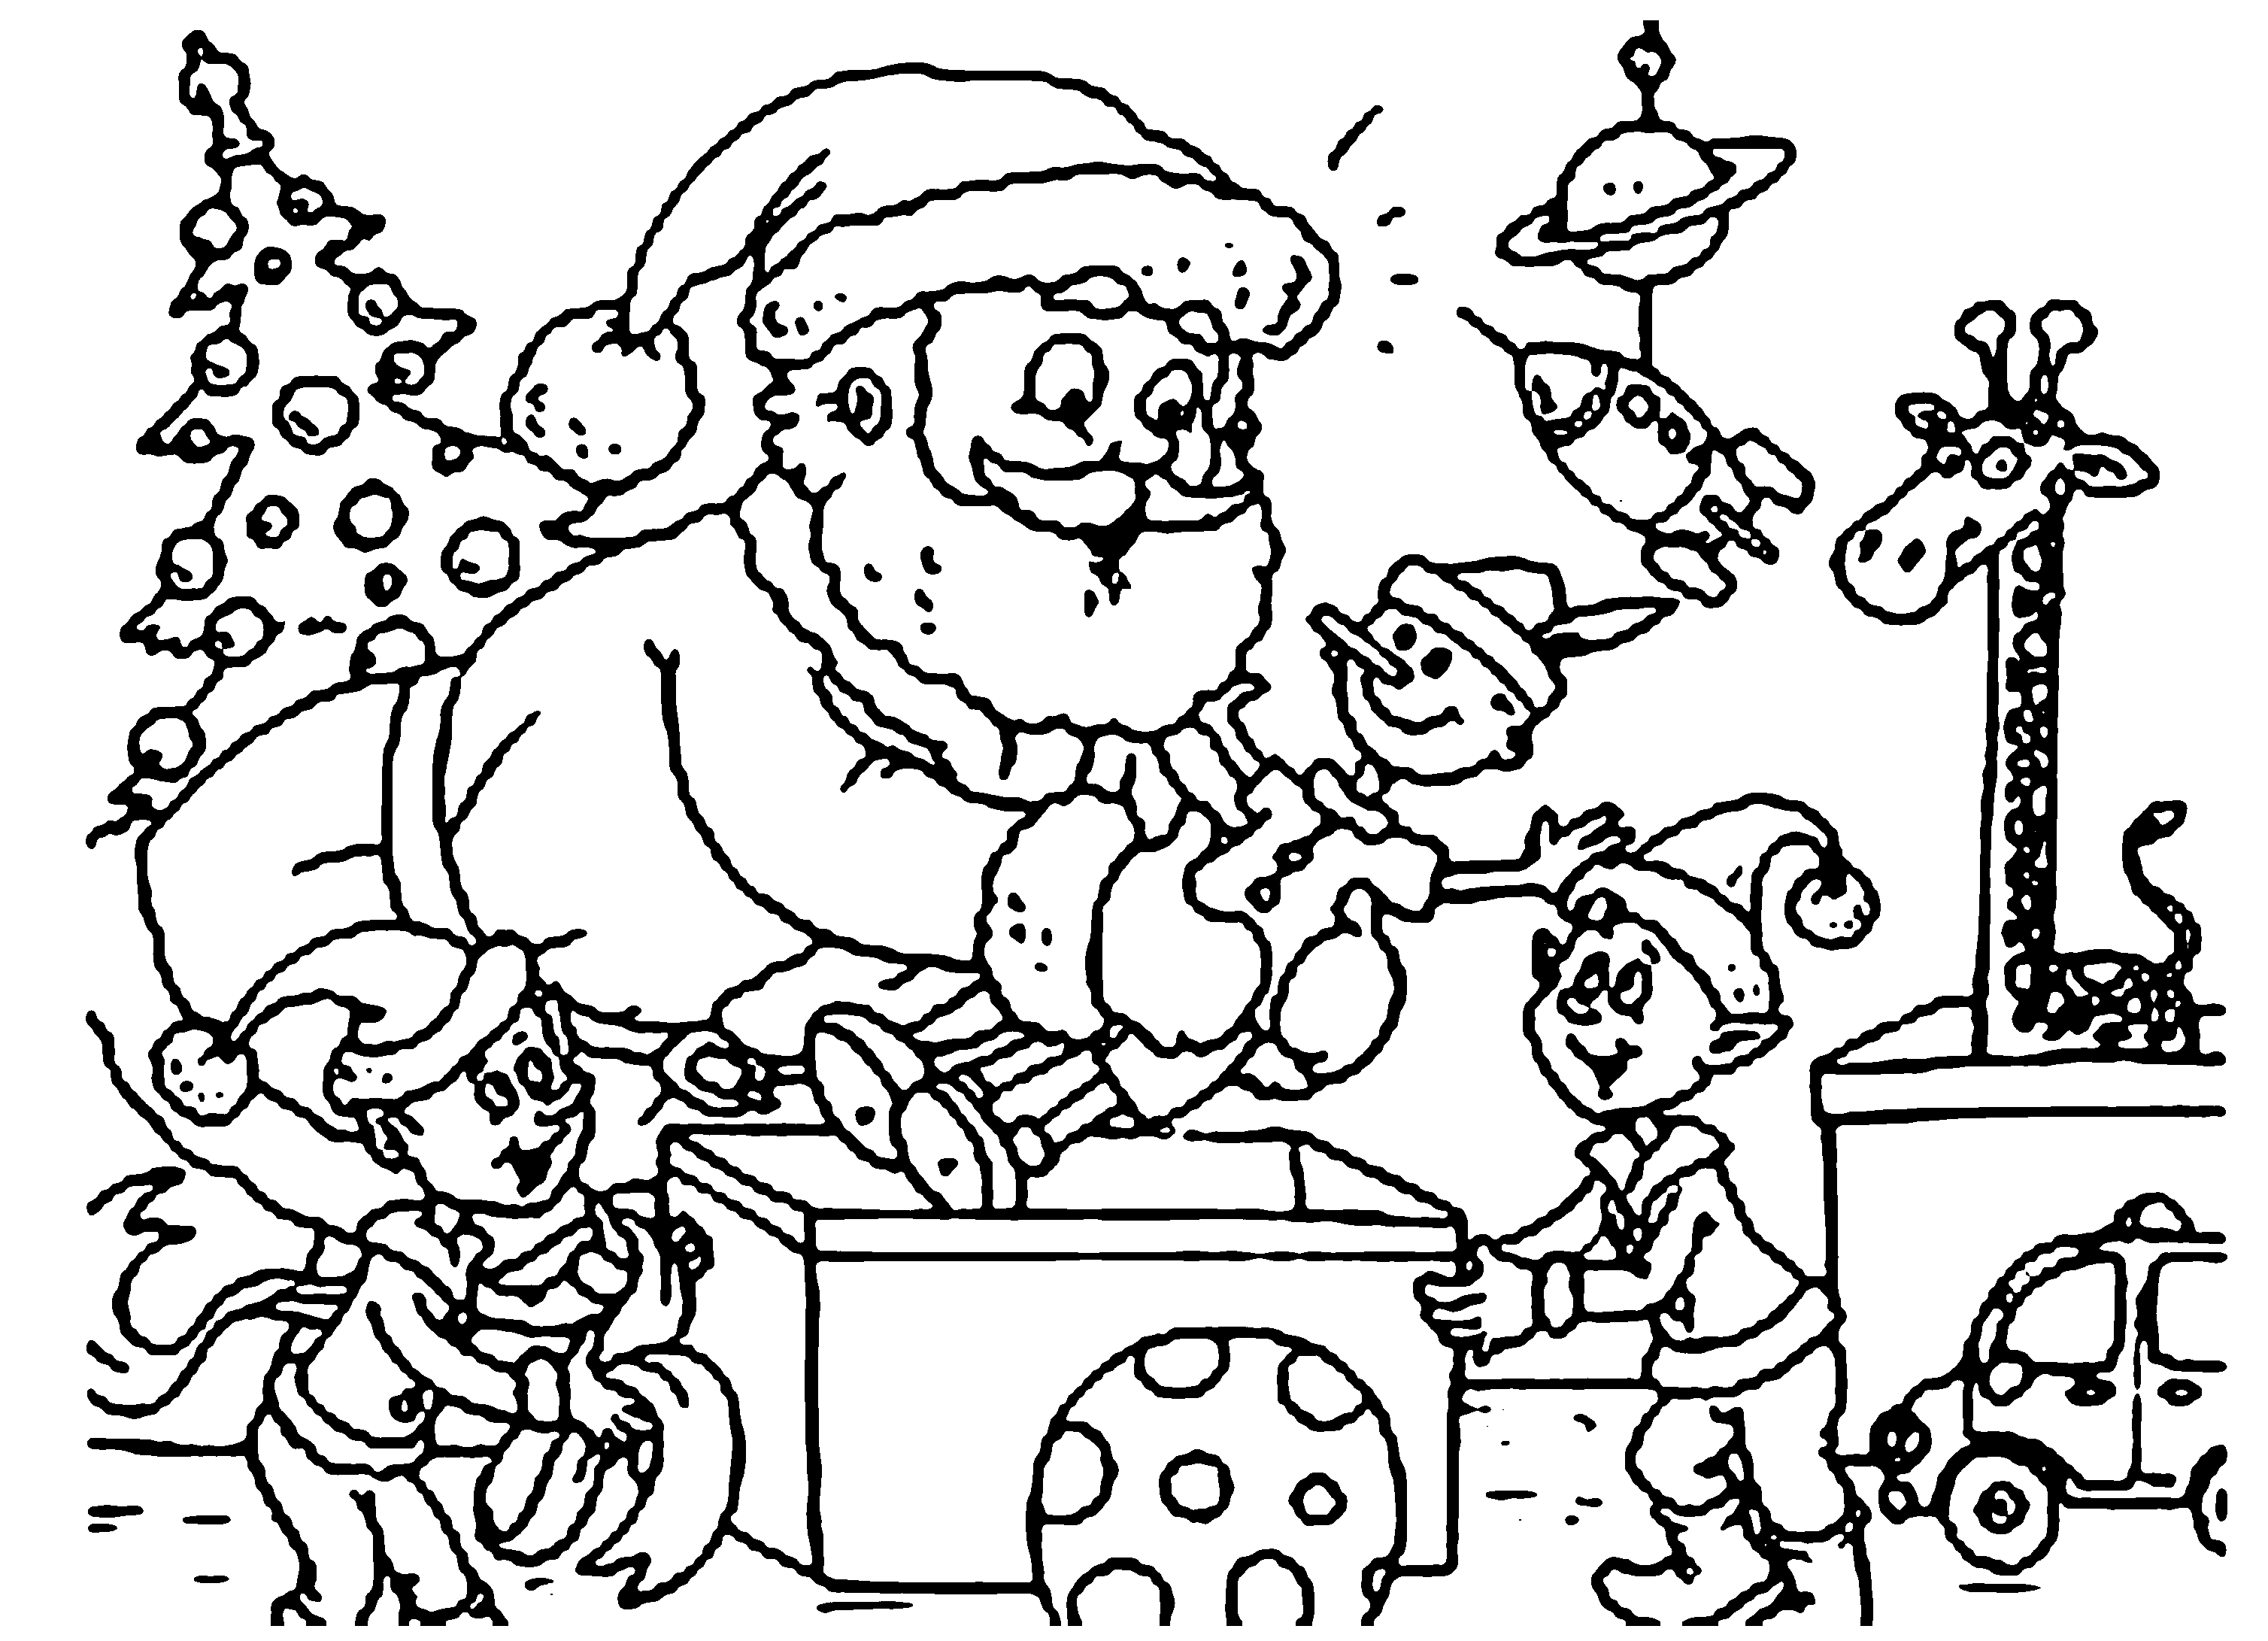 Santa Claus Coloring Pages Free With Awesome Cartoon Design Printable